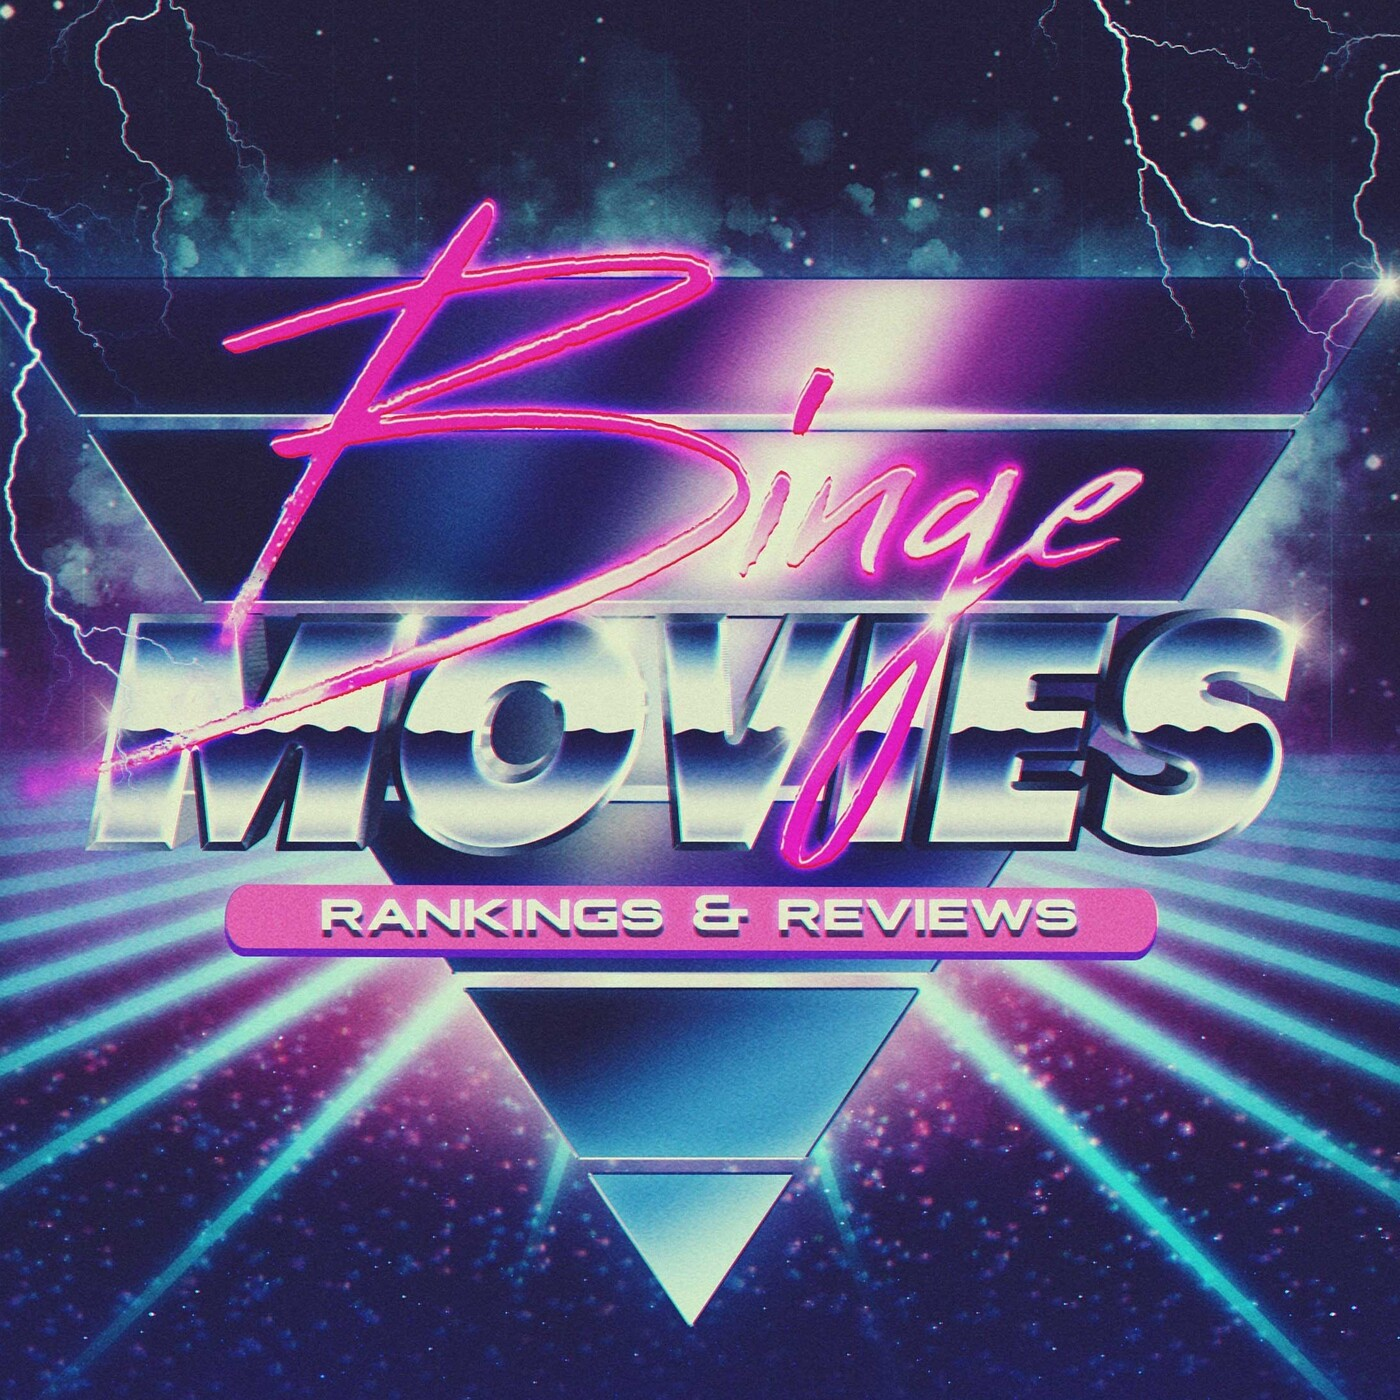 The Top Grossing Movies of 1996 Ranked, Part II